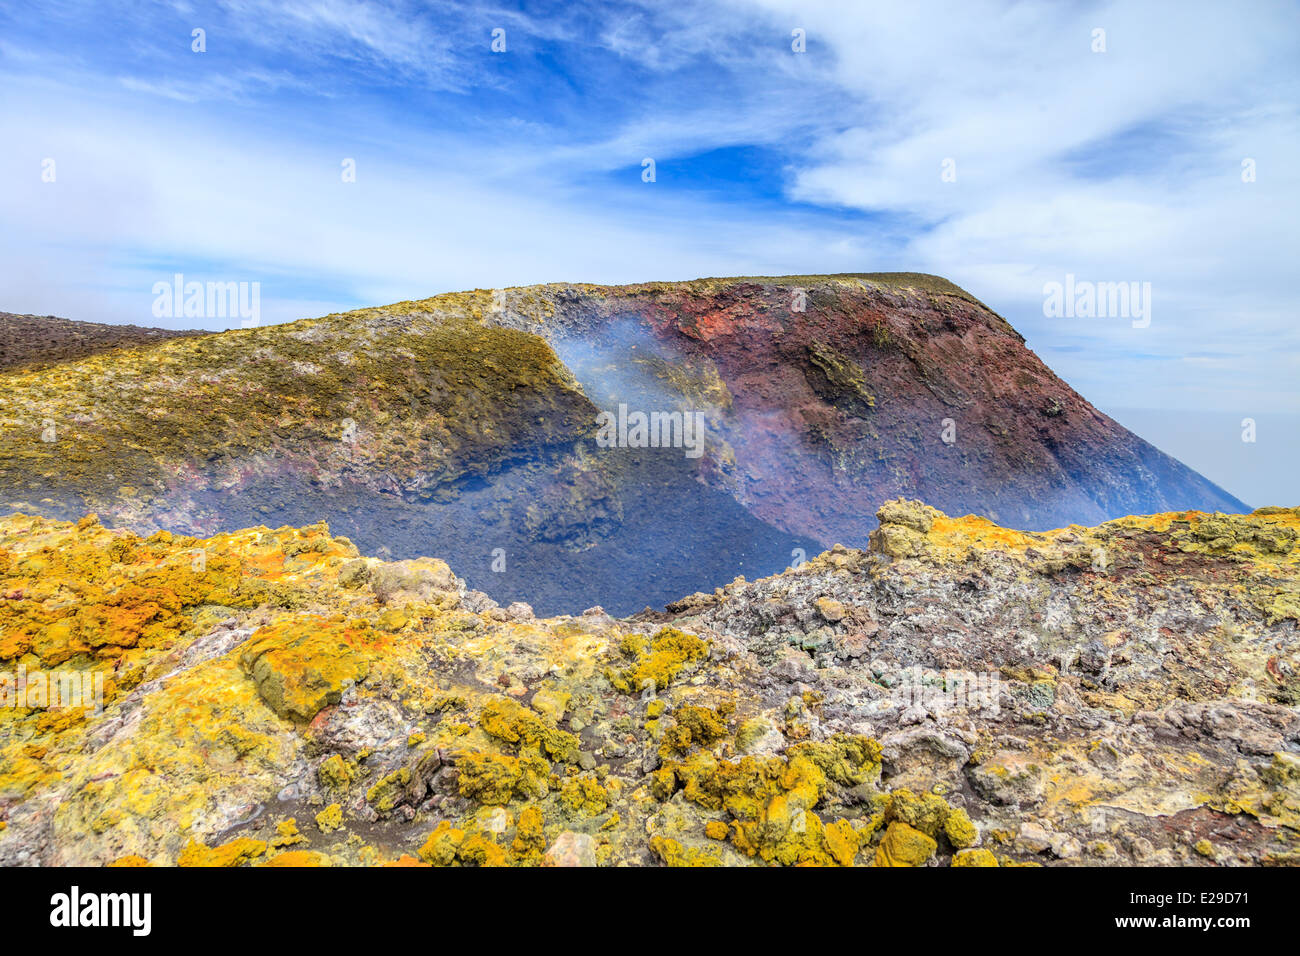 Sulfur formation around the summit mouth of Mount Etna - Stock Image